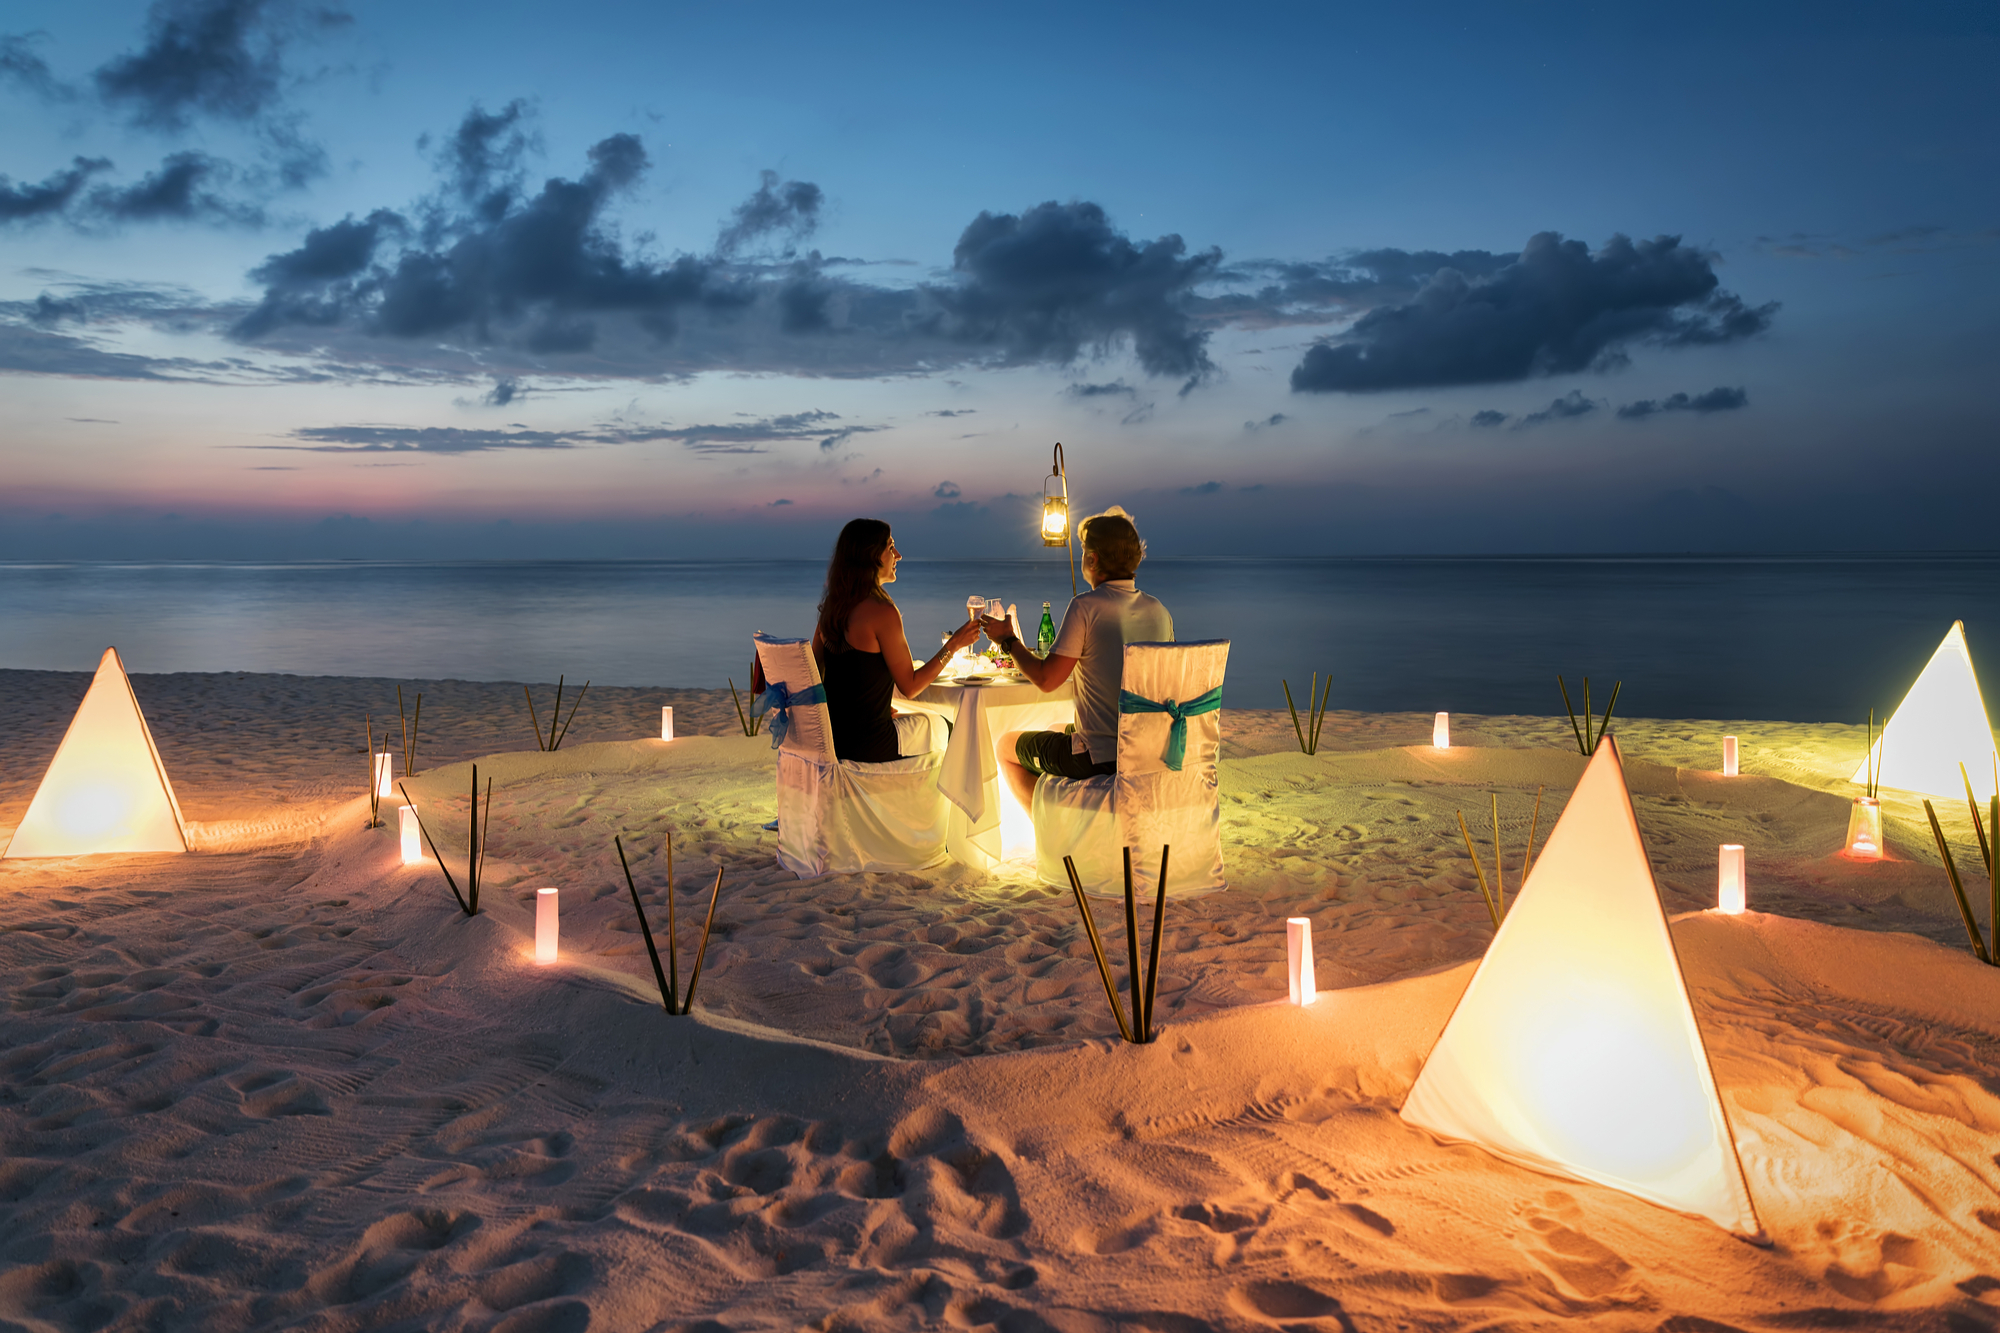 honeymoon | honeymoon destinations | destinations | vacation | travel | relaxing destinations | romantic destinations